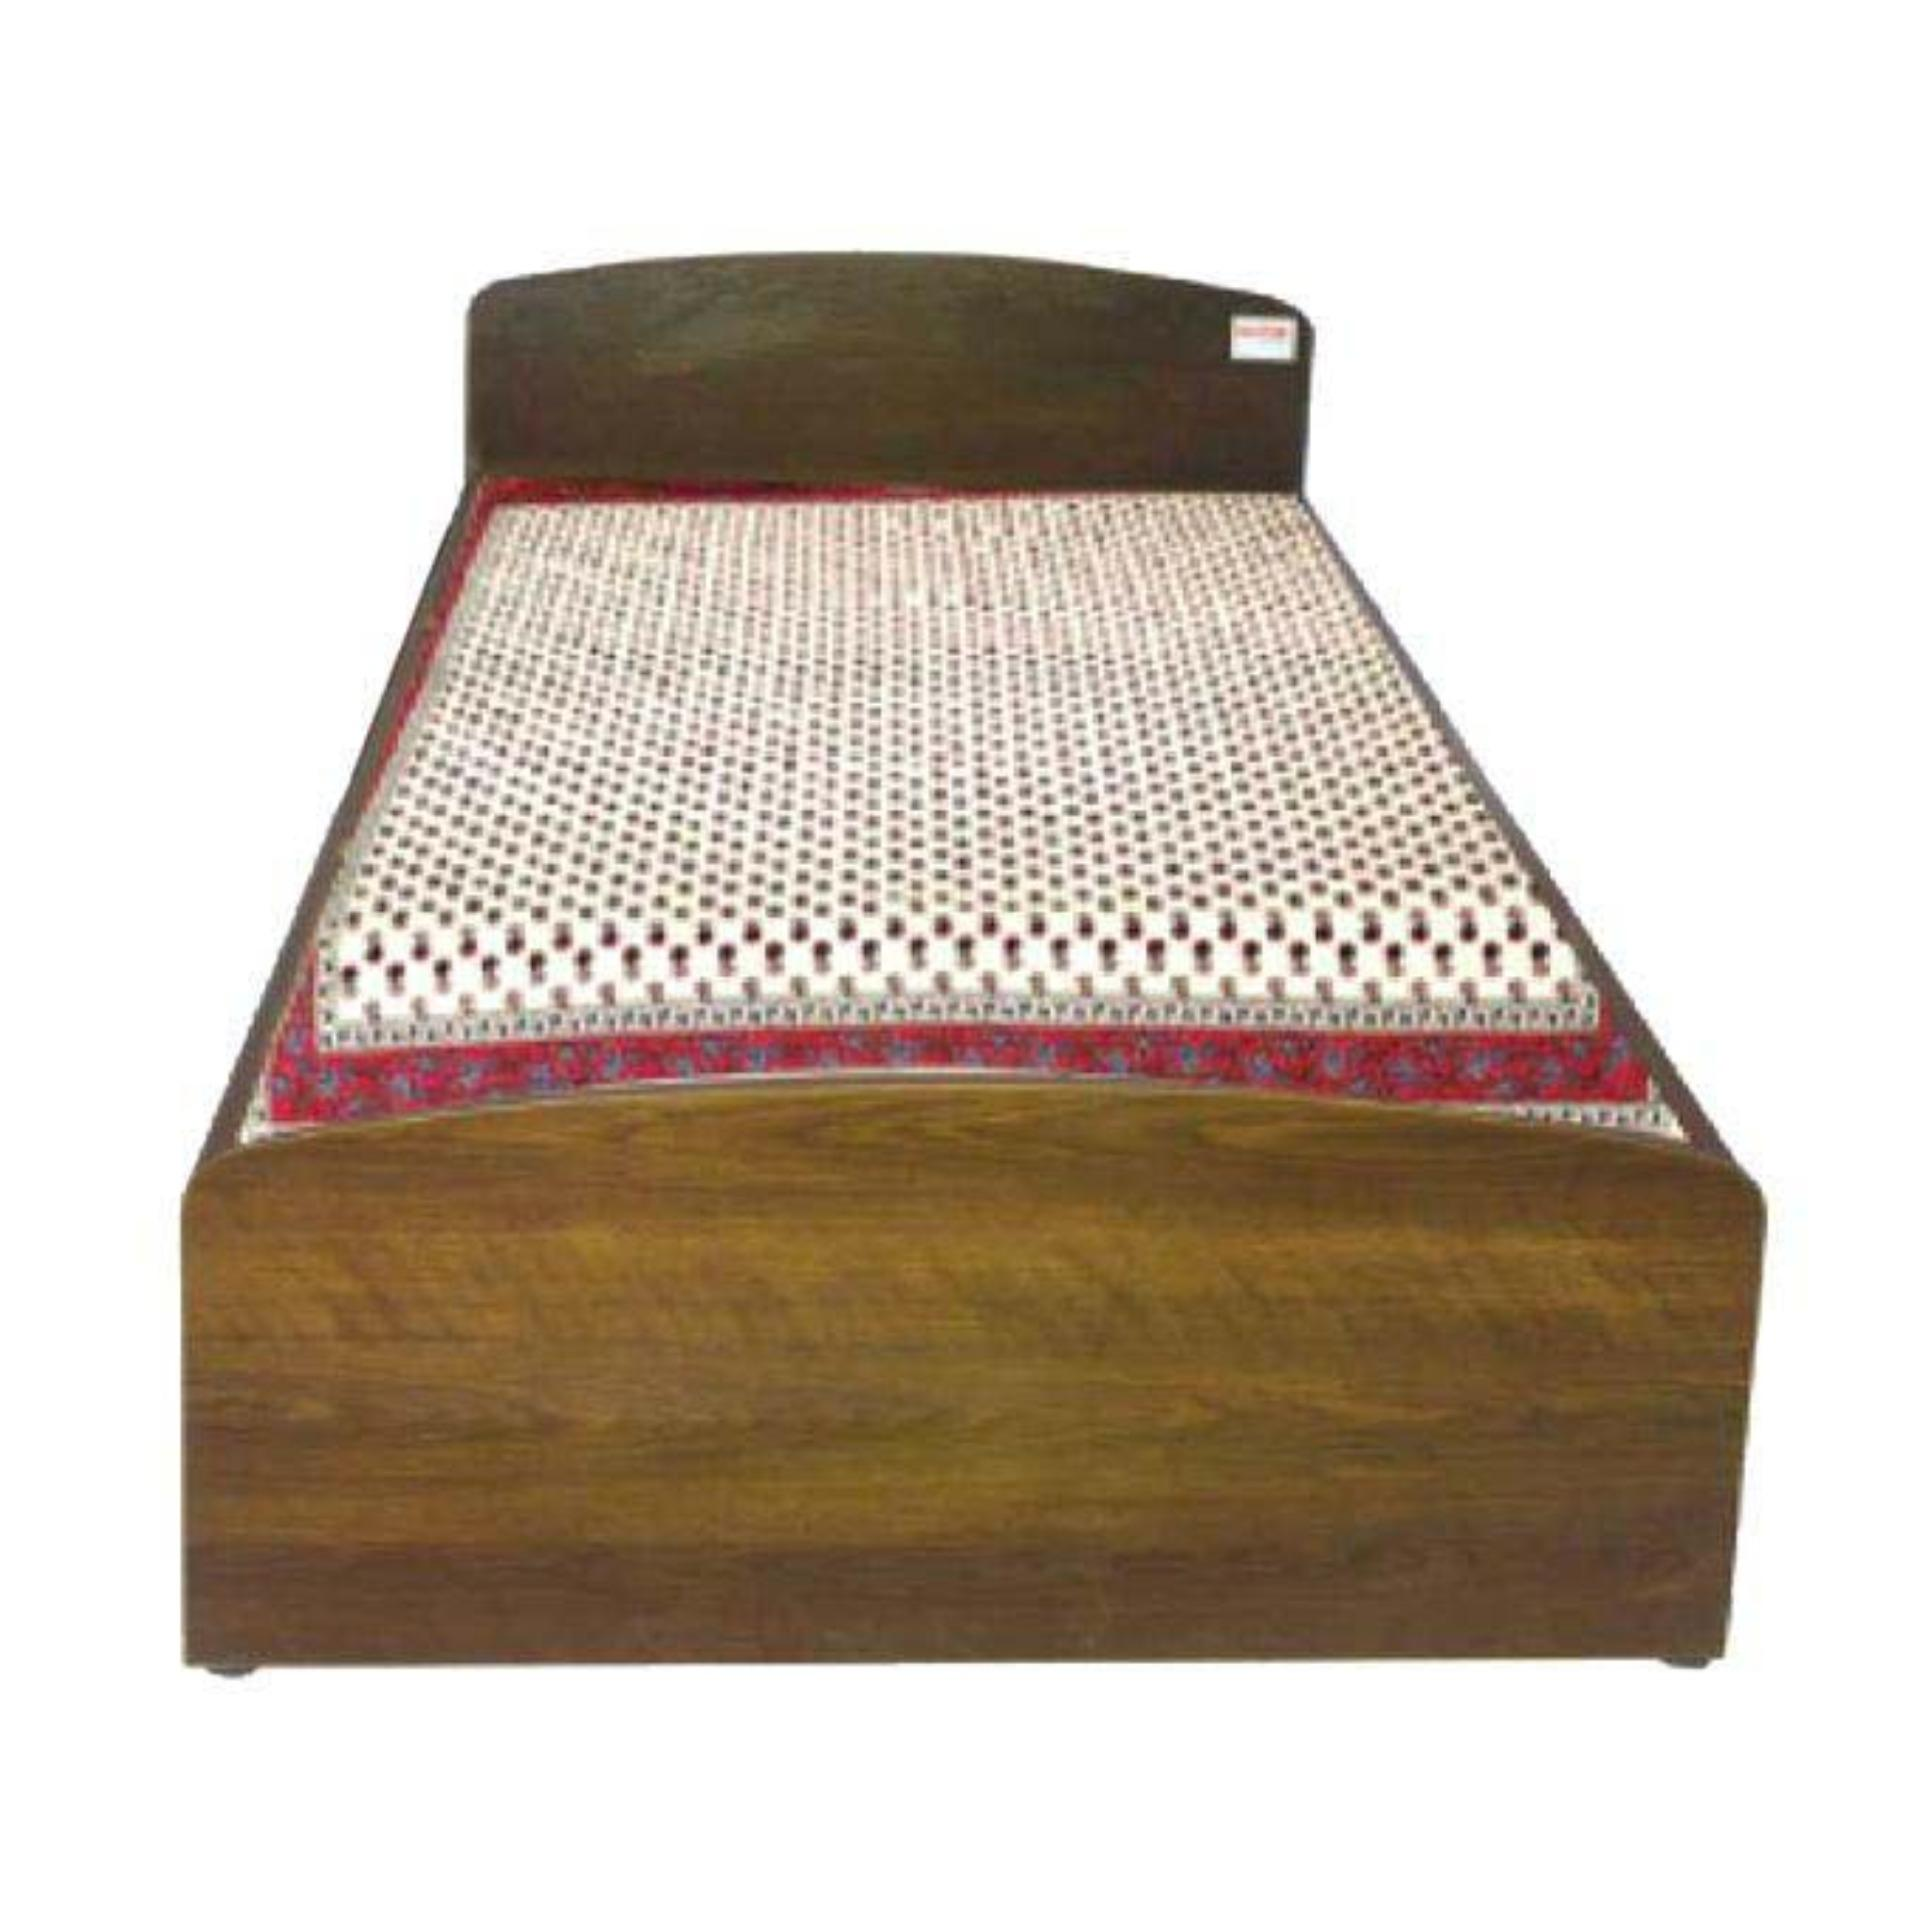 Delicieux HBSH 101 4 10 Laminated Board Single Bed   Antique